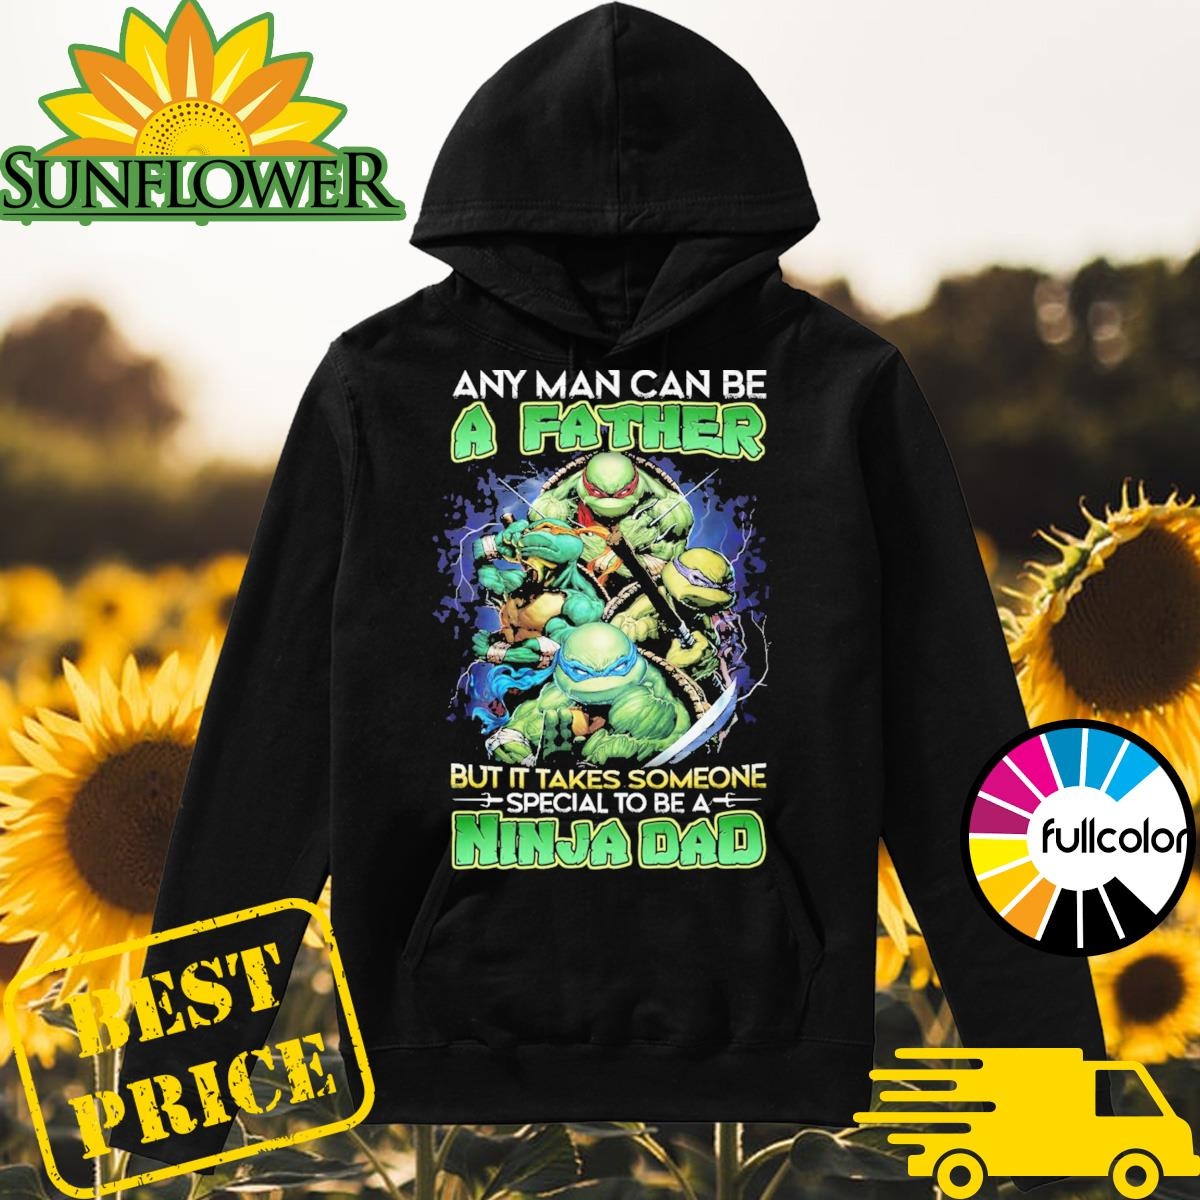 Teenage Mutant Ninja Turtles Any man can be a Father but it takes someone special to be Ninja Dad Hoodie